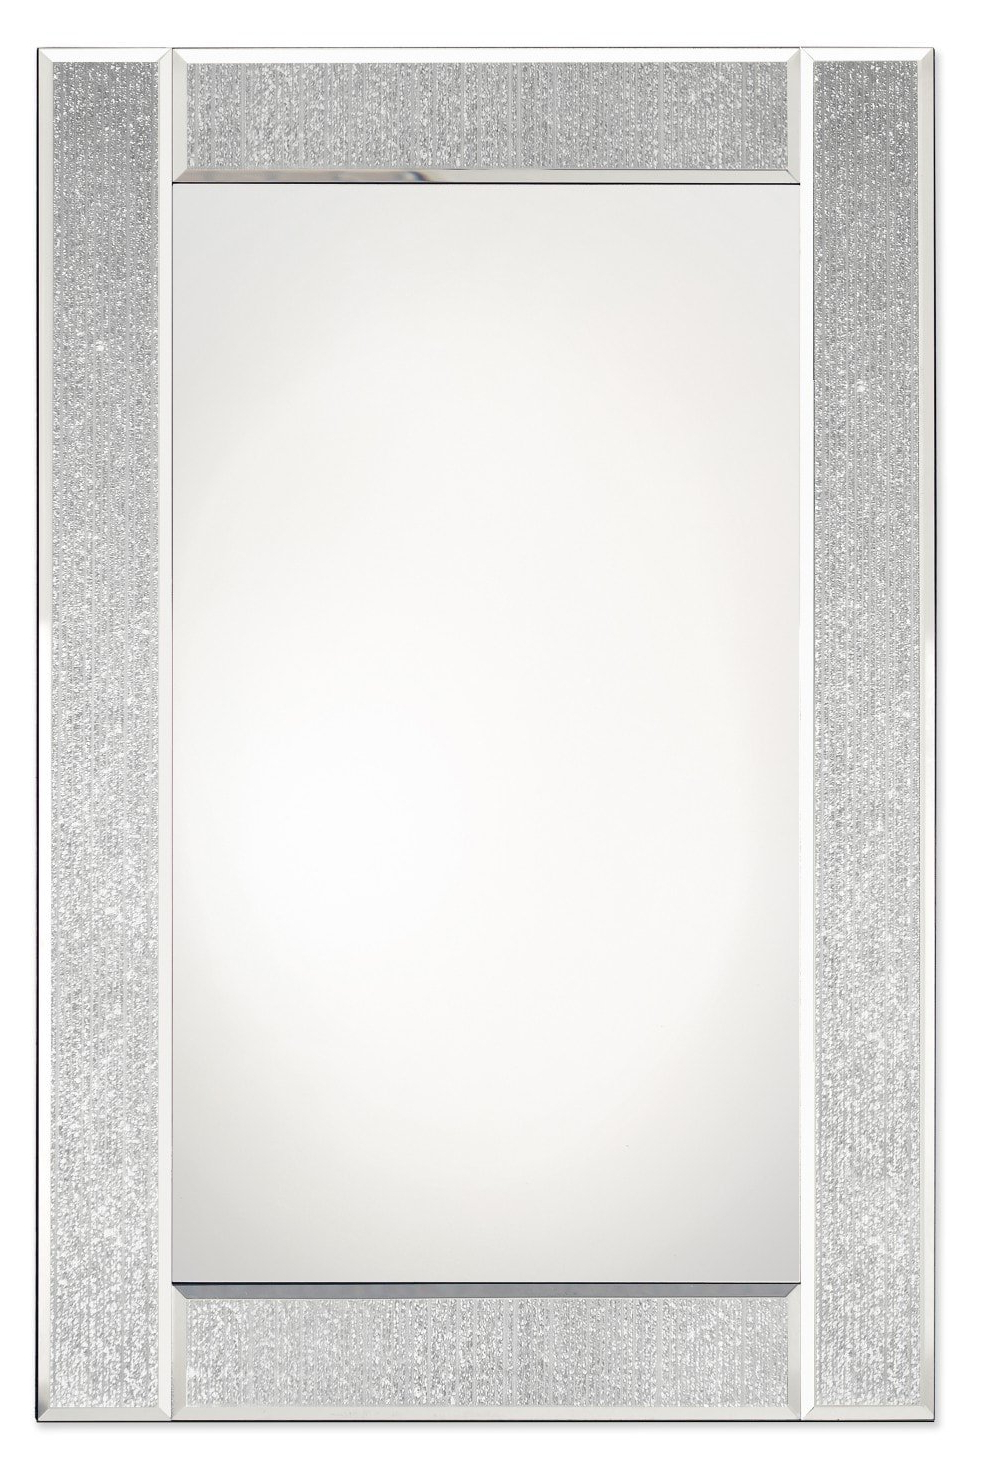 Glitter Wall Mirrors Within Most Recent Glitter Ascot Mirror – Silver – 50X75Cm – Glitter Wall (View 5 of 20)